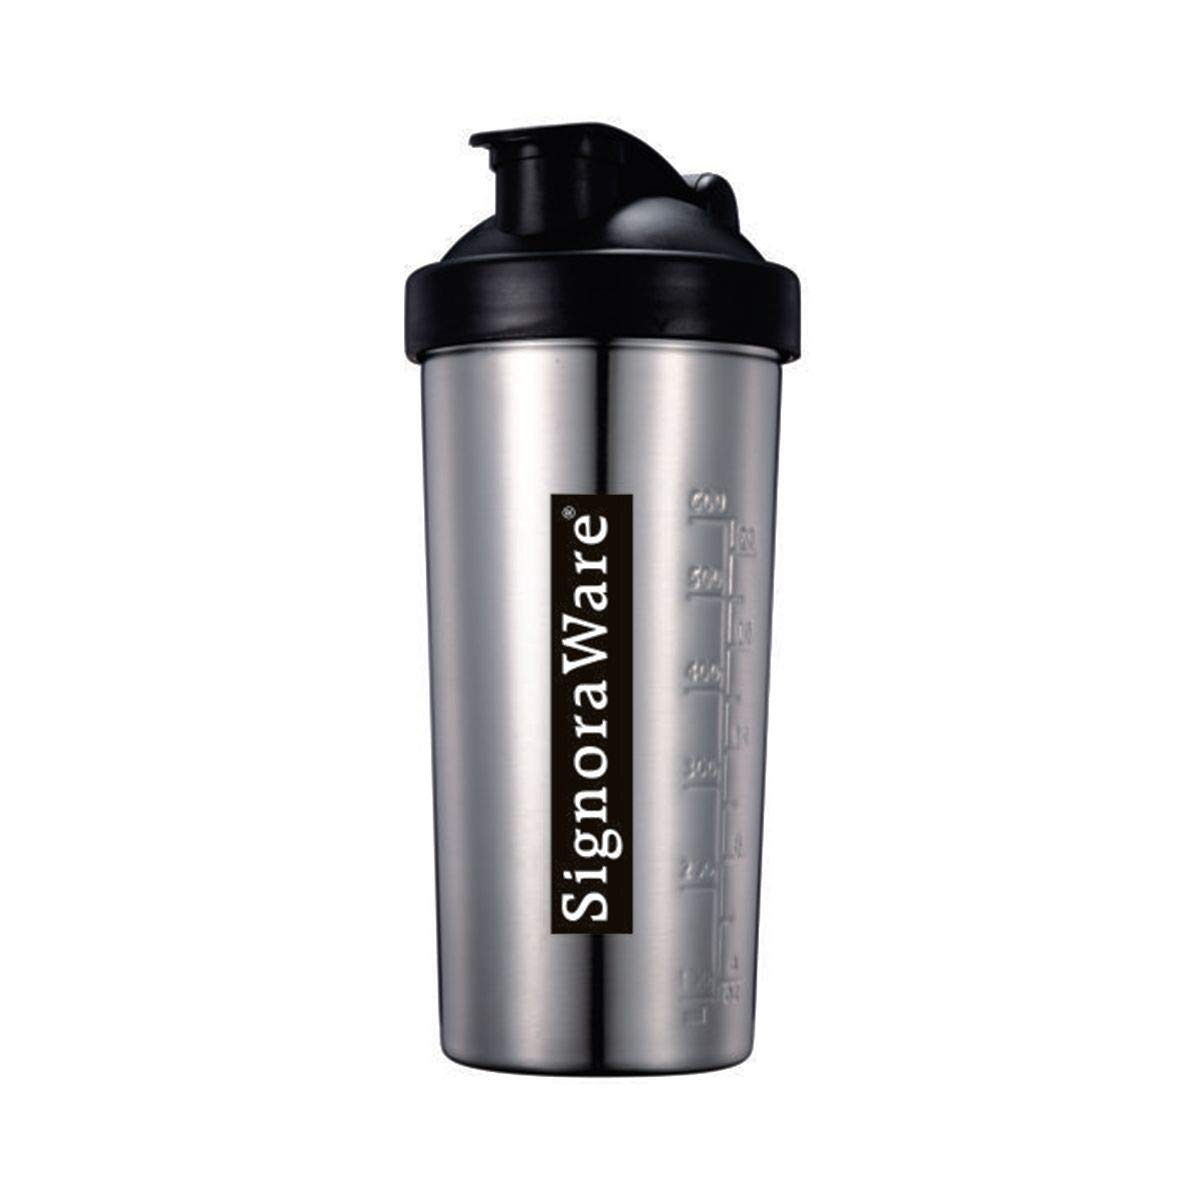 Signoraware Pro Shaker Stainless Steel Container (Silver)